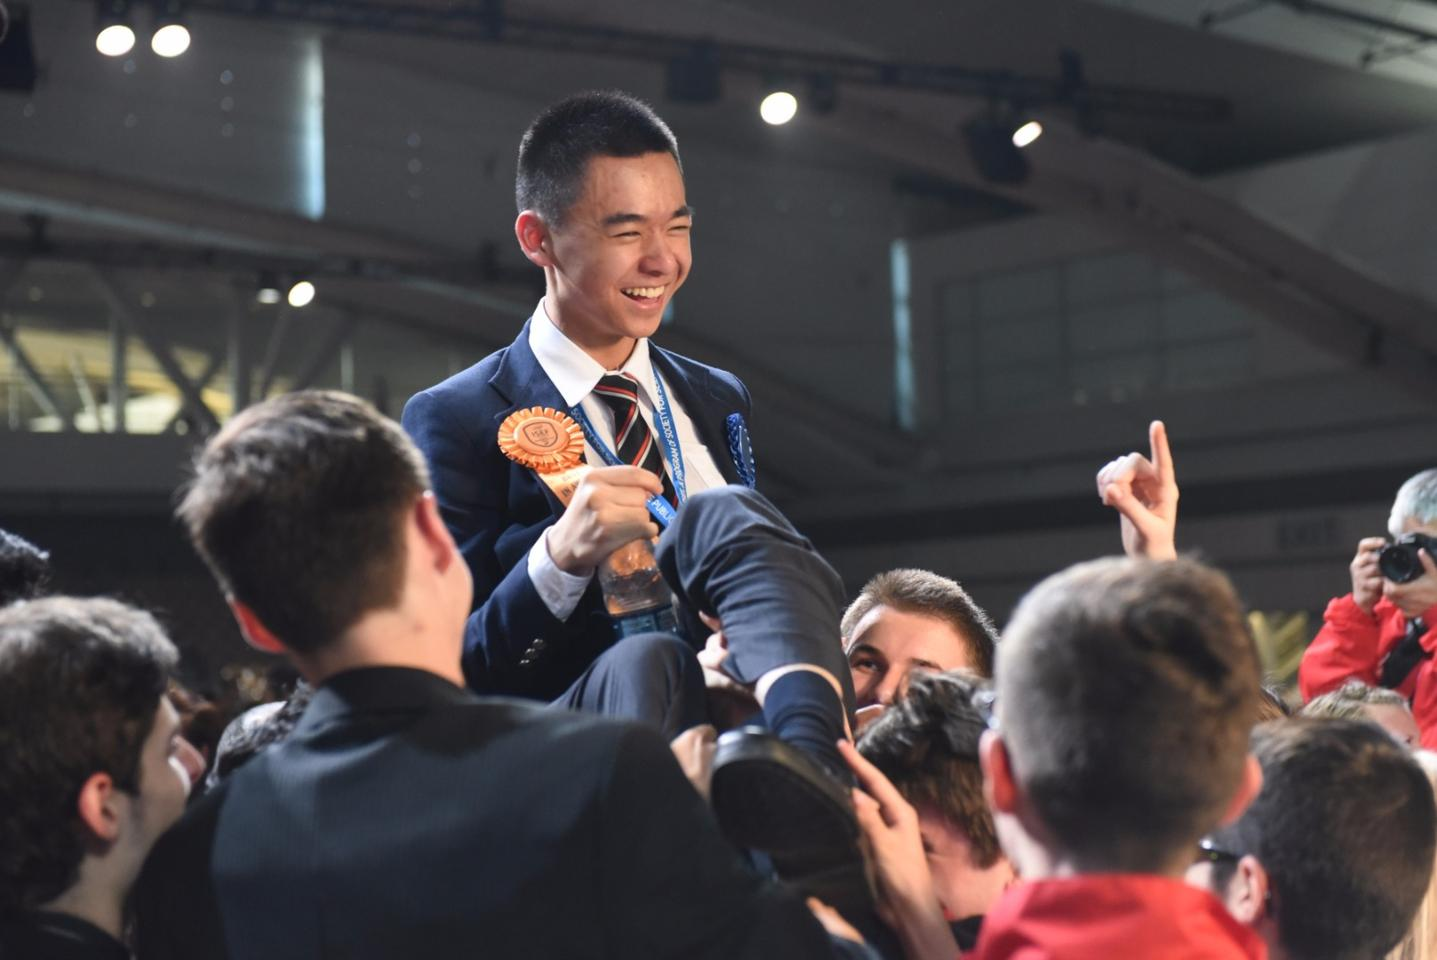 Raymond Wang, the 17-year-old Canadian first place winner at the 2015 Intel International Science and Engineering Fair, celebrates among his fellow finalists